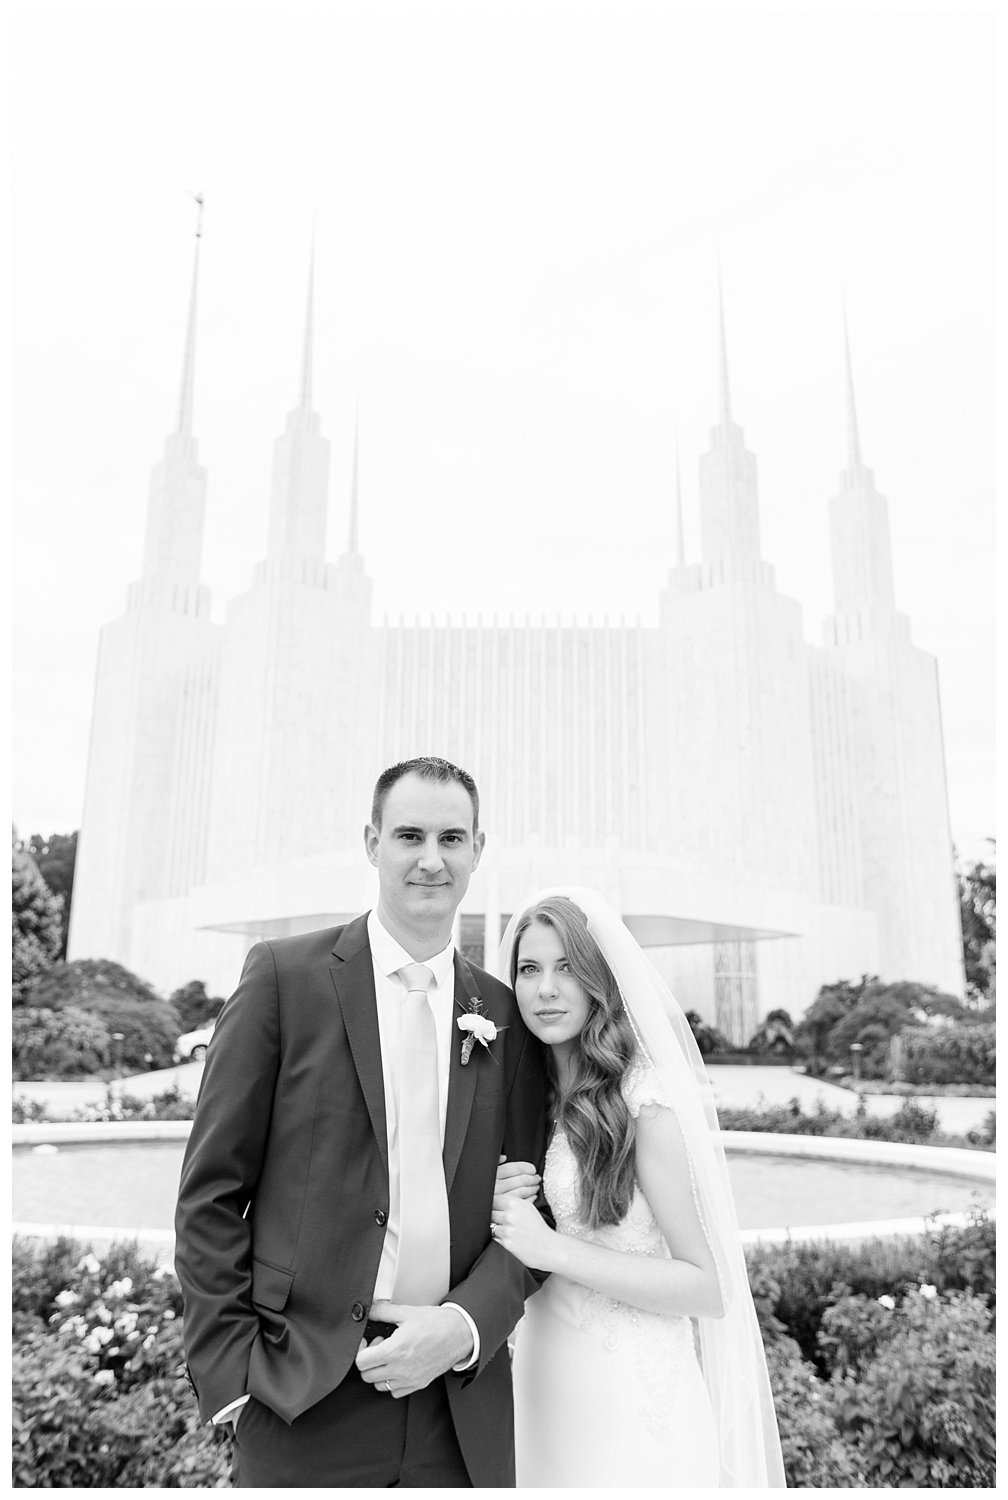 elovephotos Washington DC LDS Temple Photographer_0873.jpg